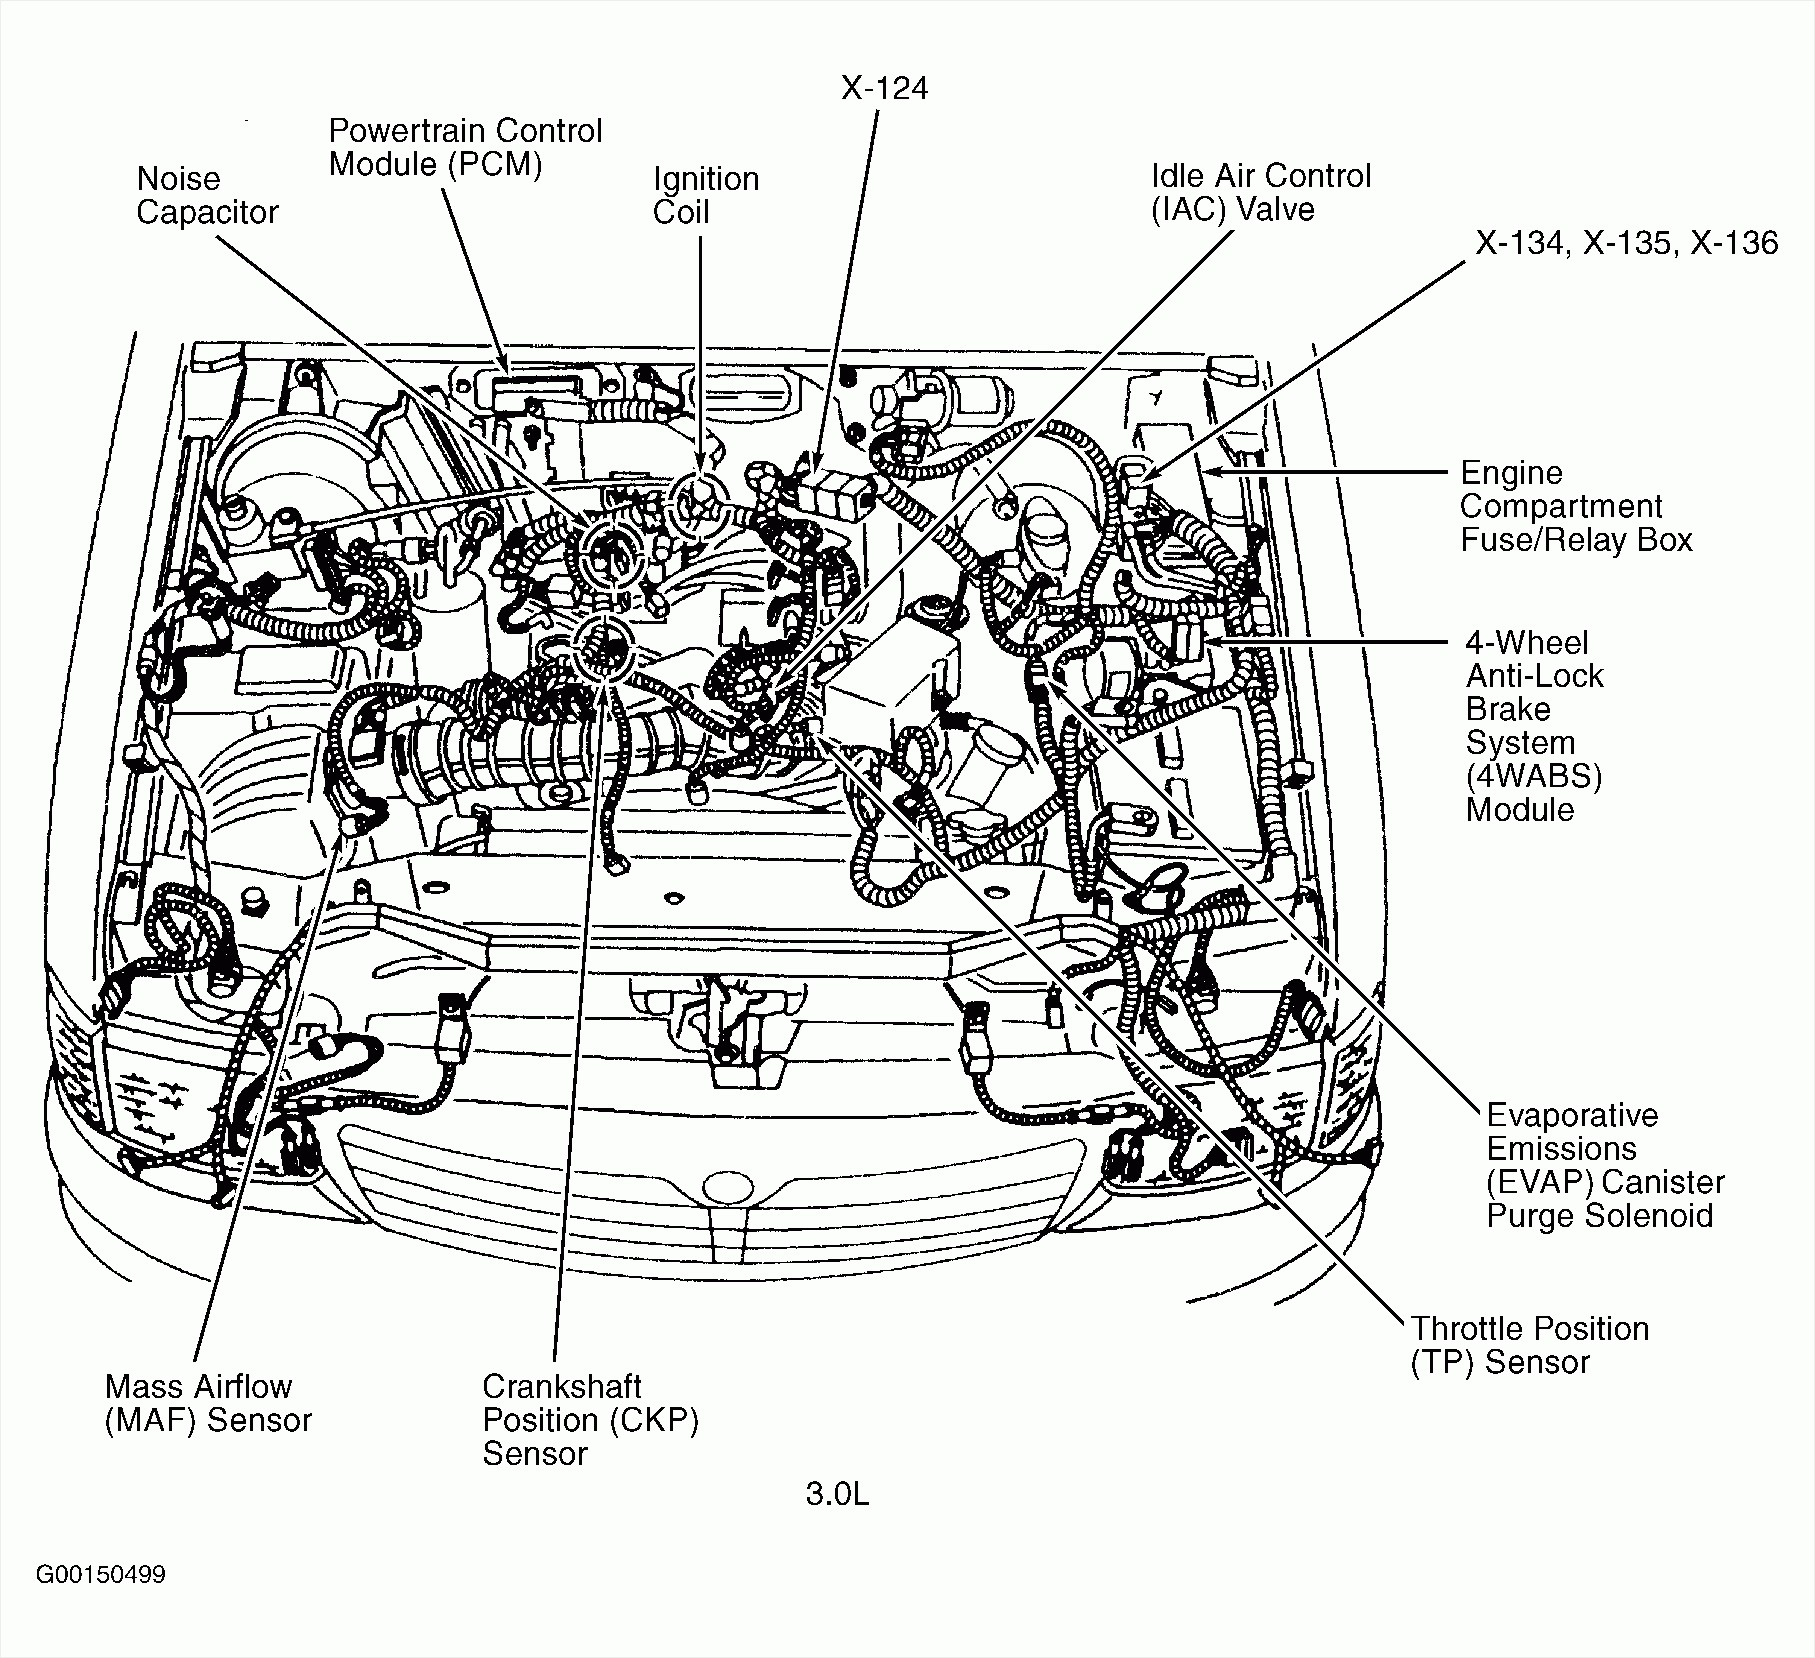 05 f250 6 0 engine diagram best site wiring harness